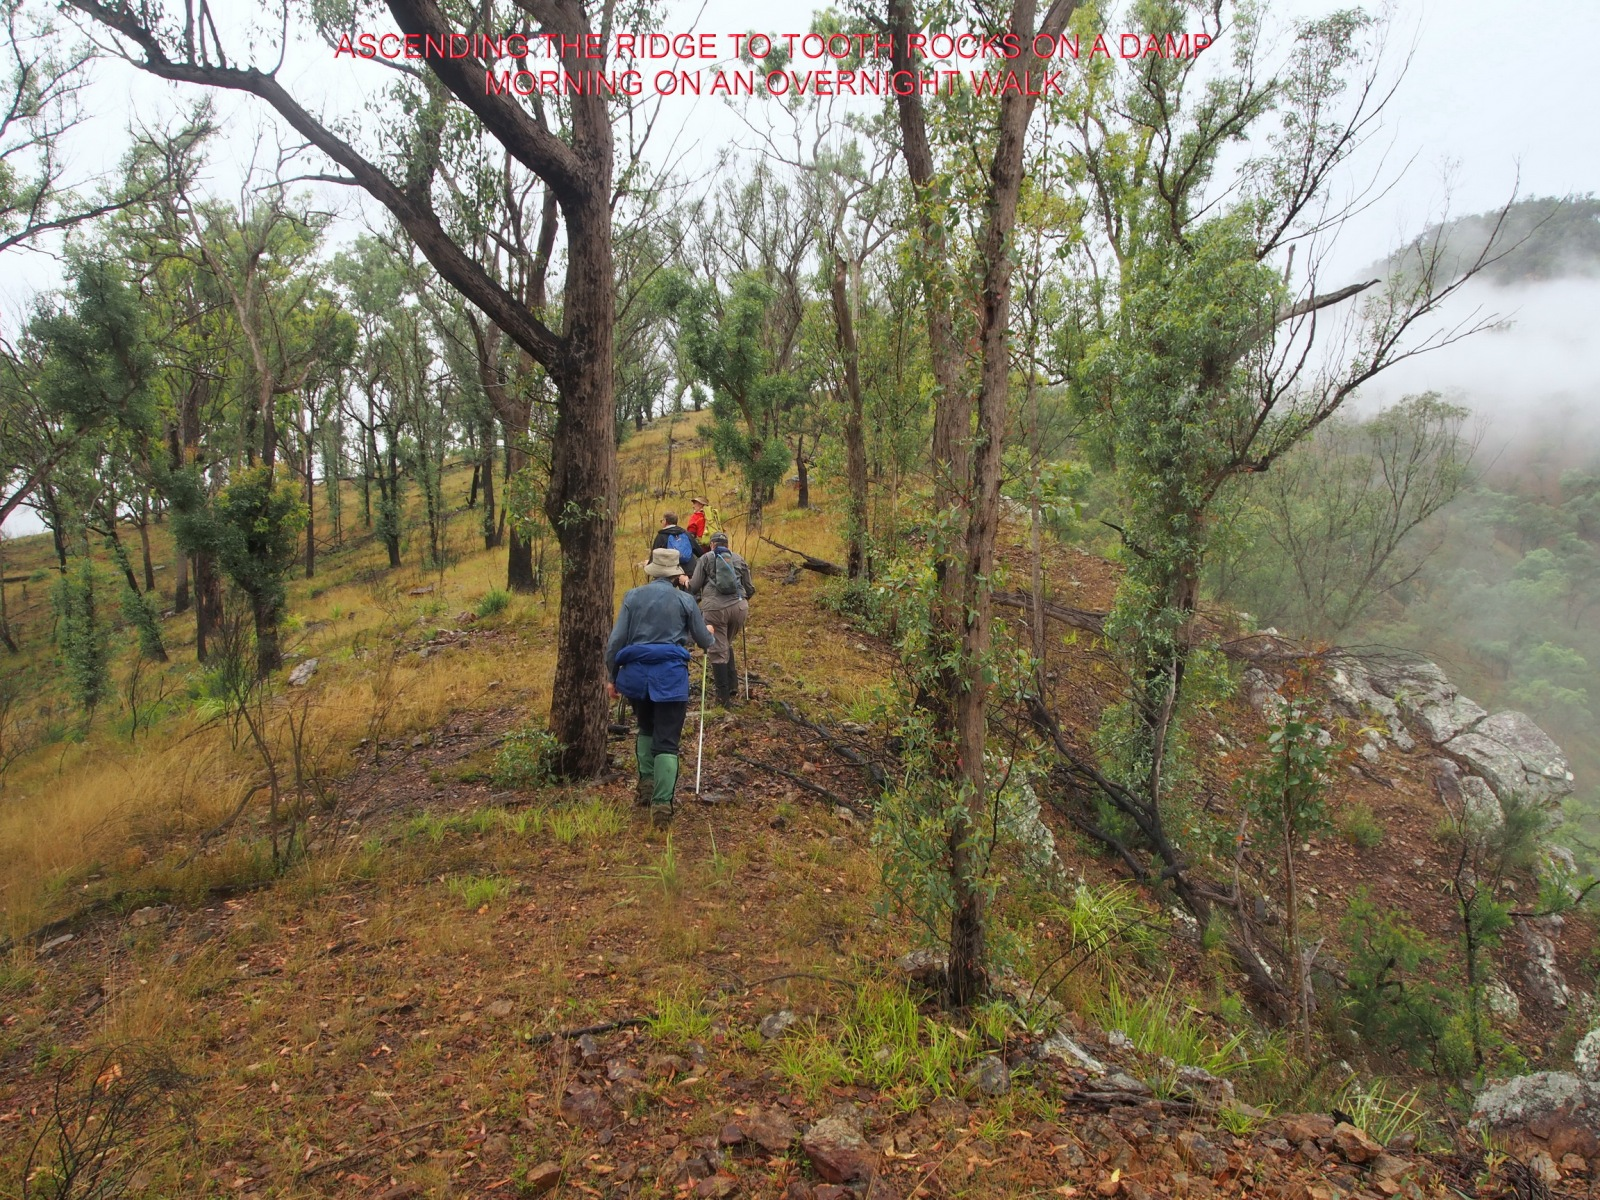 ASCENDING THE RIDGE TO TOOTH ROCKS ON A DAMP MORNING ON AN OVERNIGHT WALK